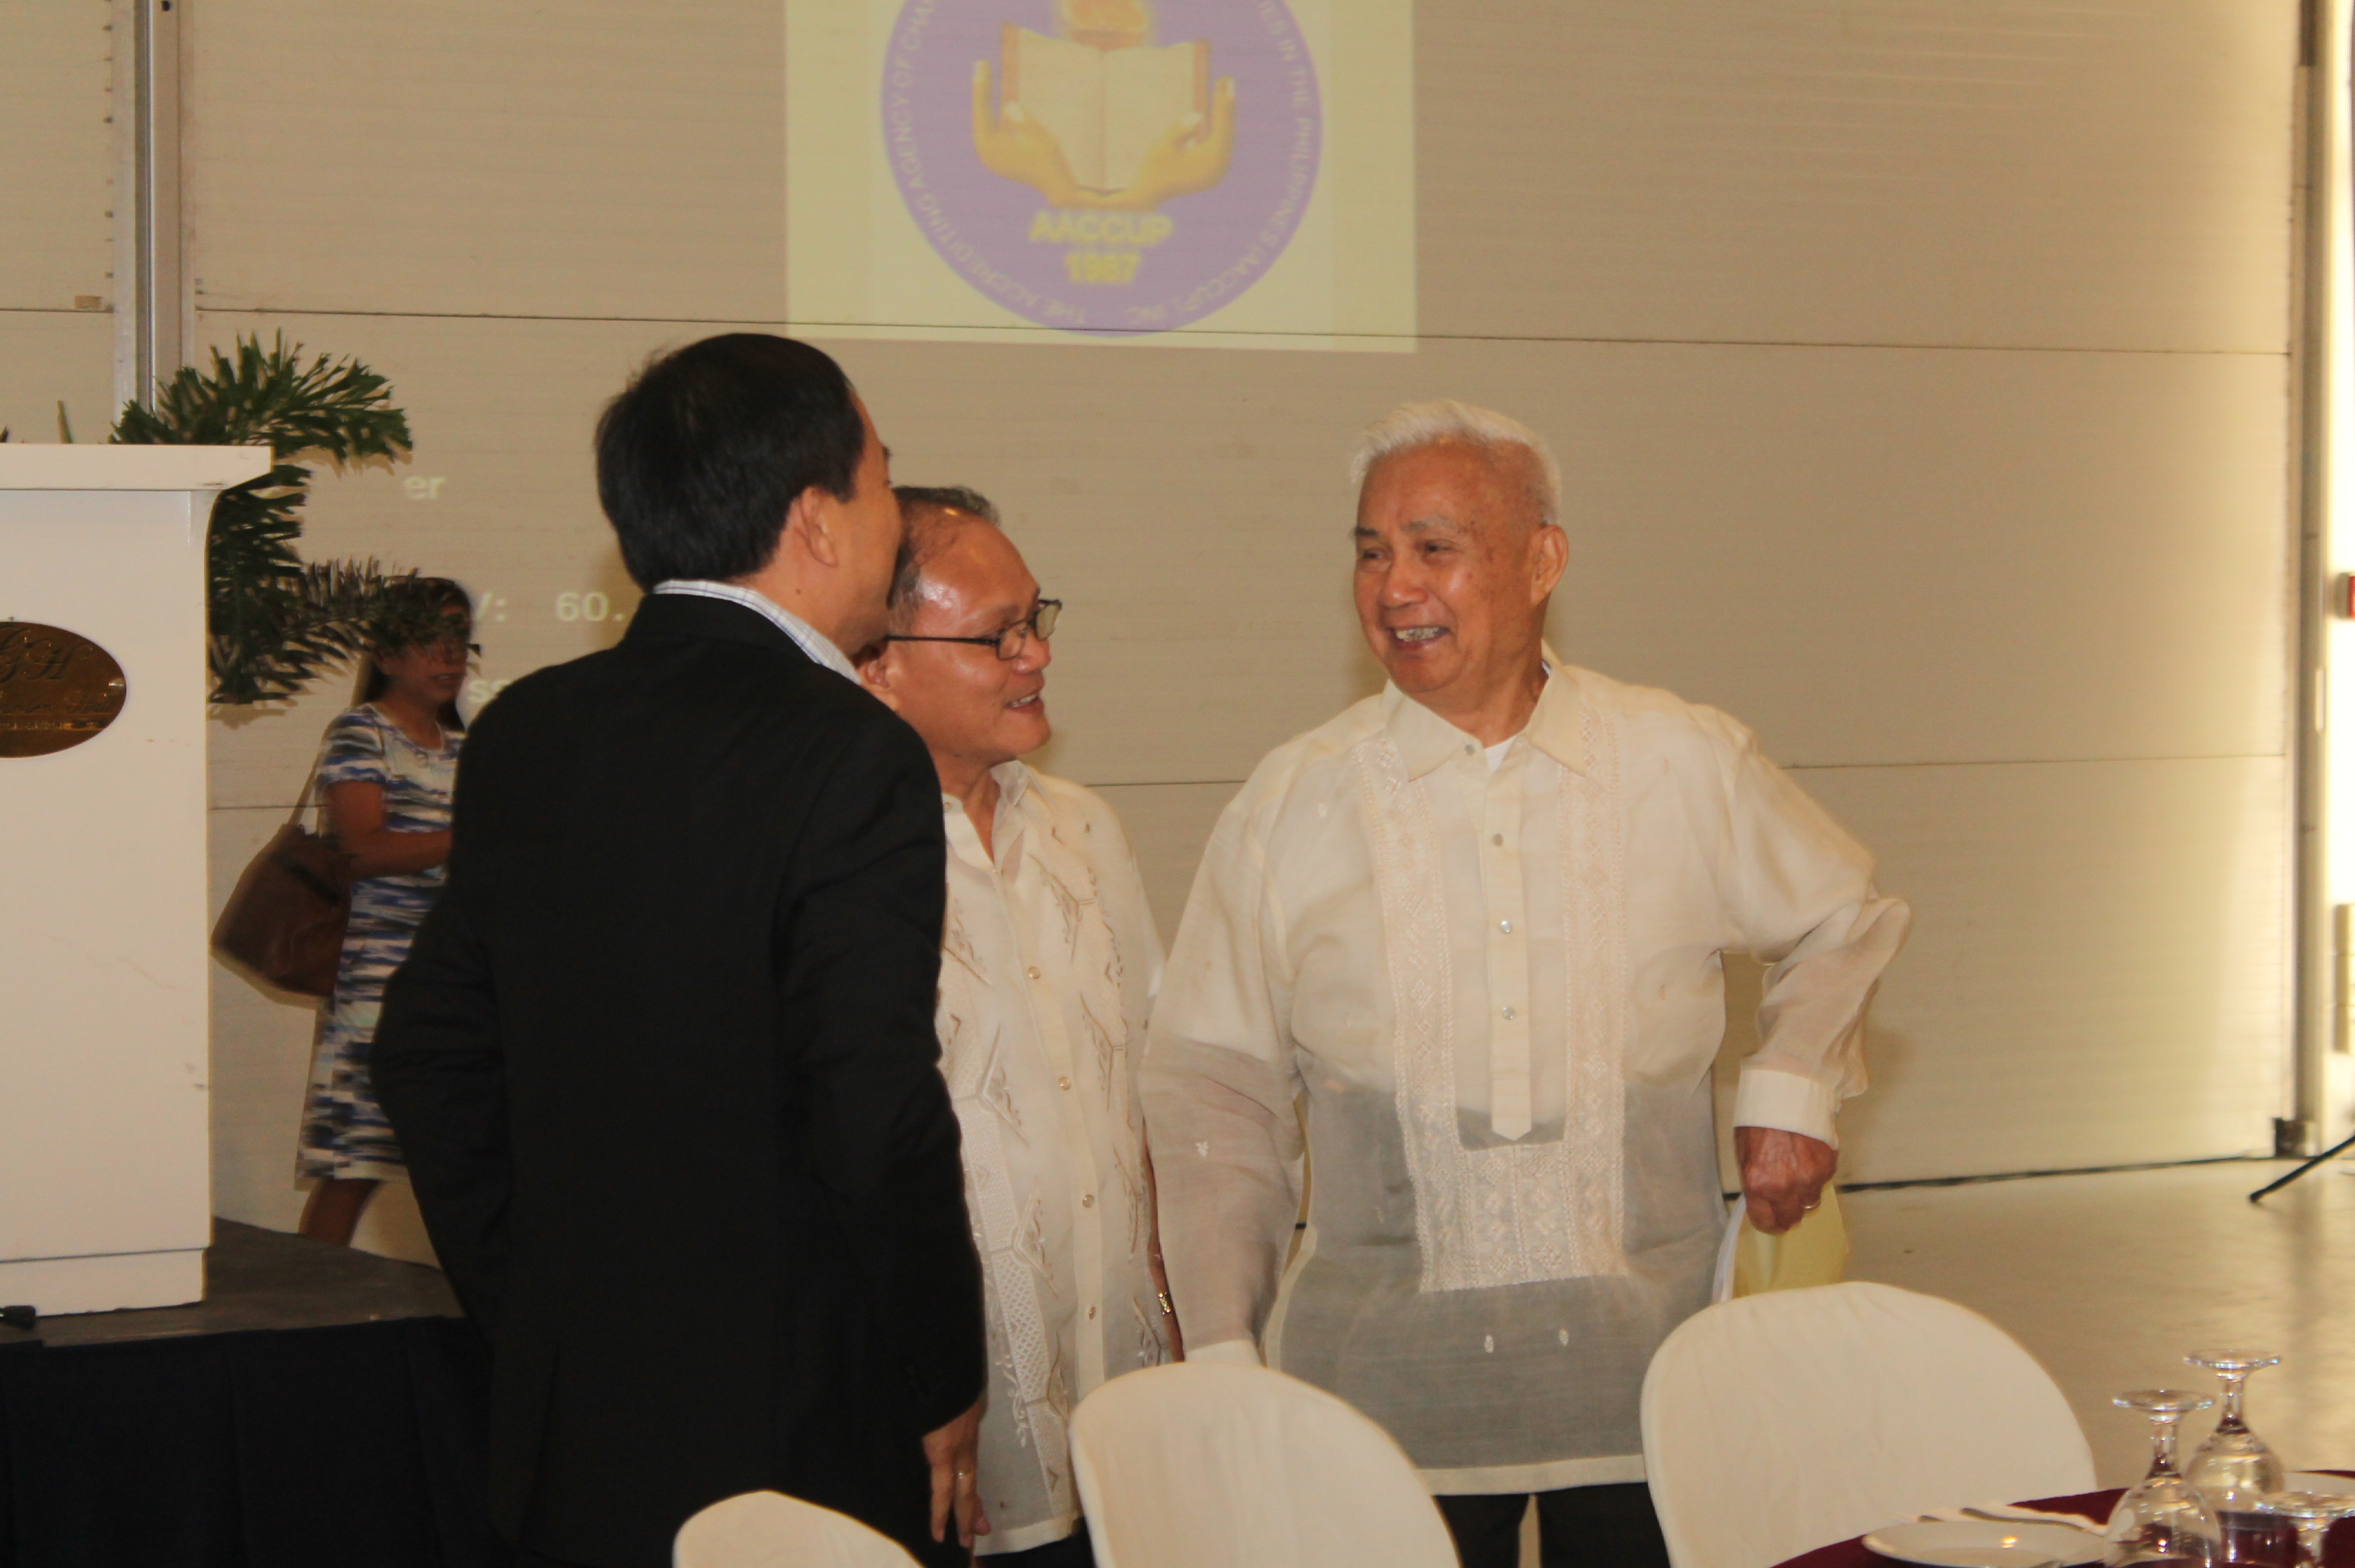 Dr. Mario S. Suba, Dr. Raul  F. Muyong and Dr. Angel C. Alcala